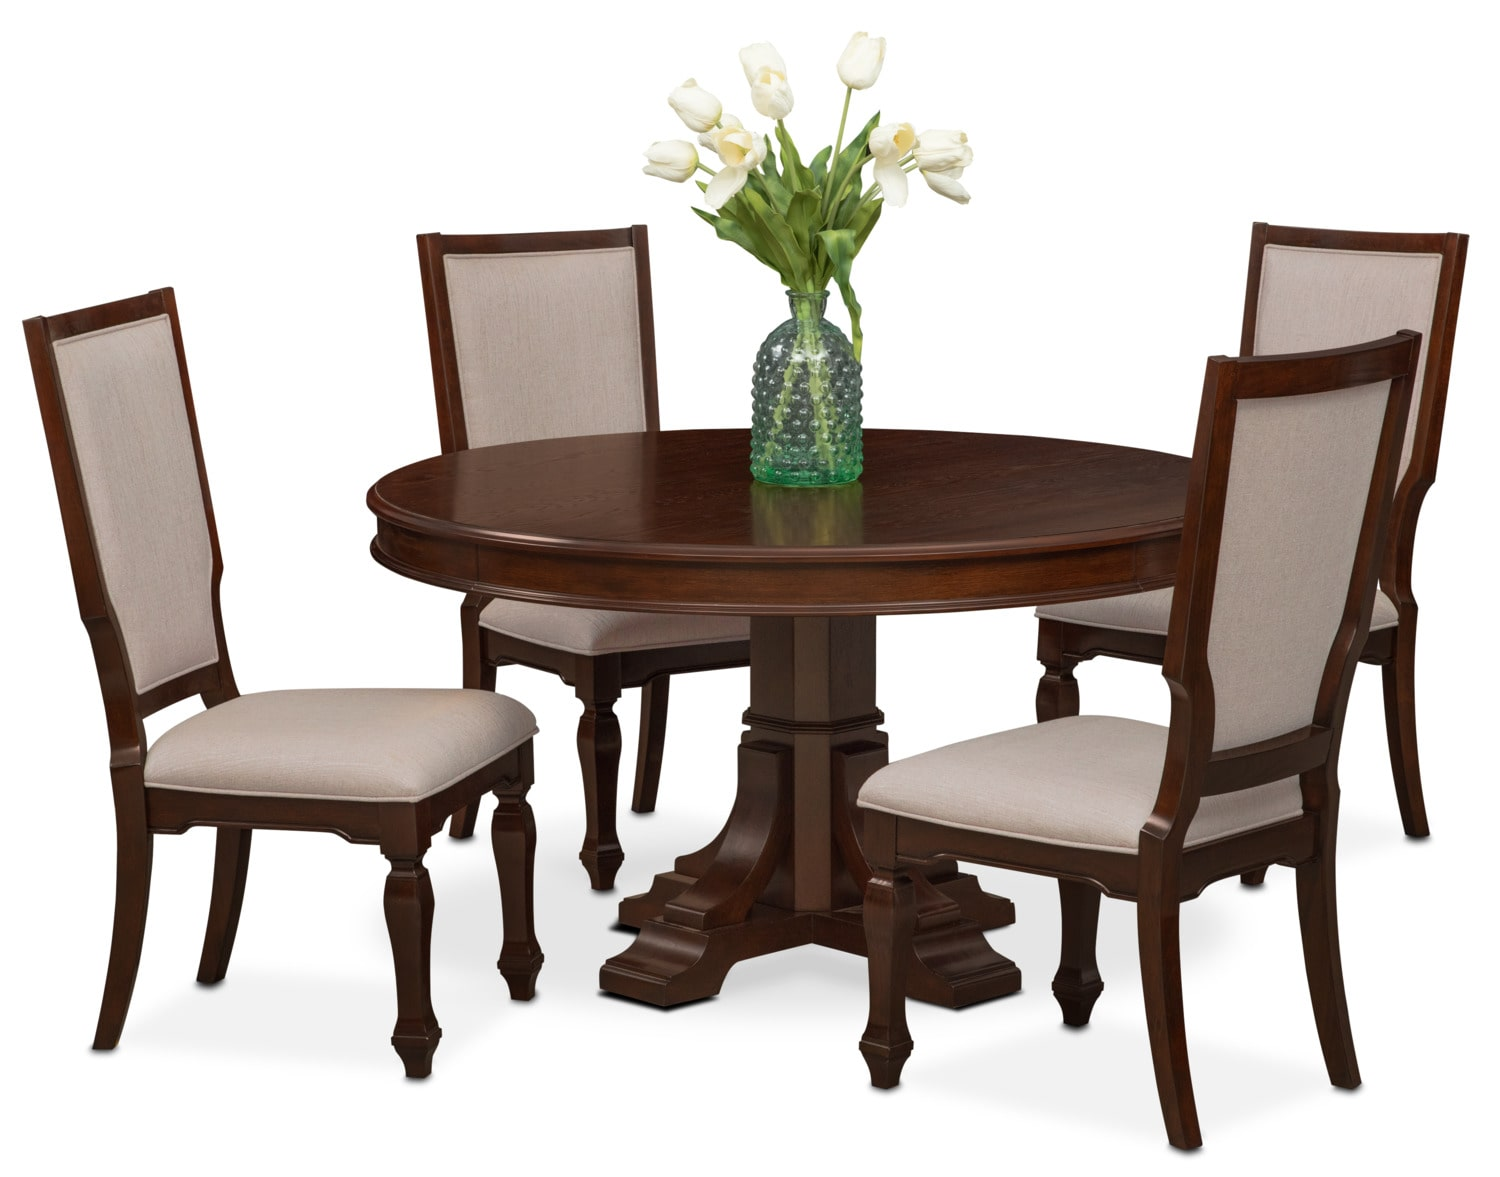 Vienna Round Dining Table And 4 Upholstered Side Chairs